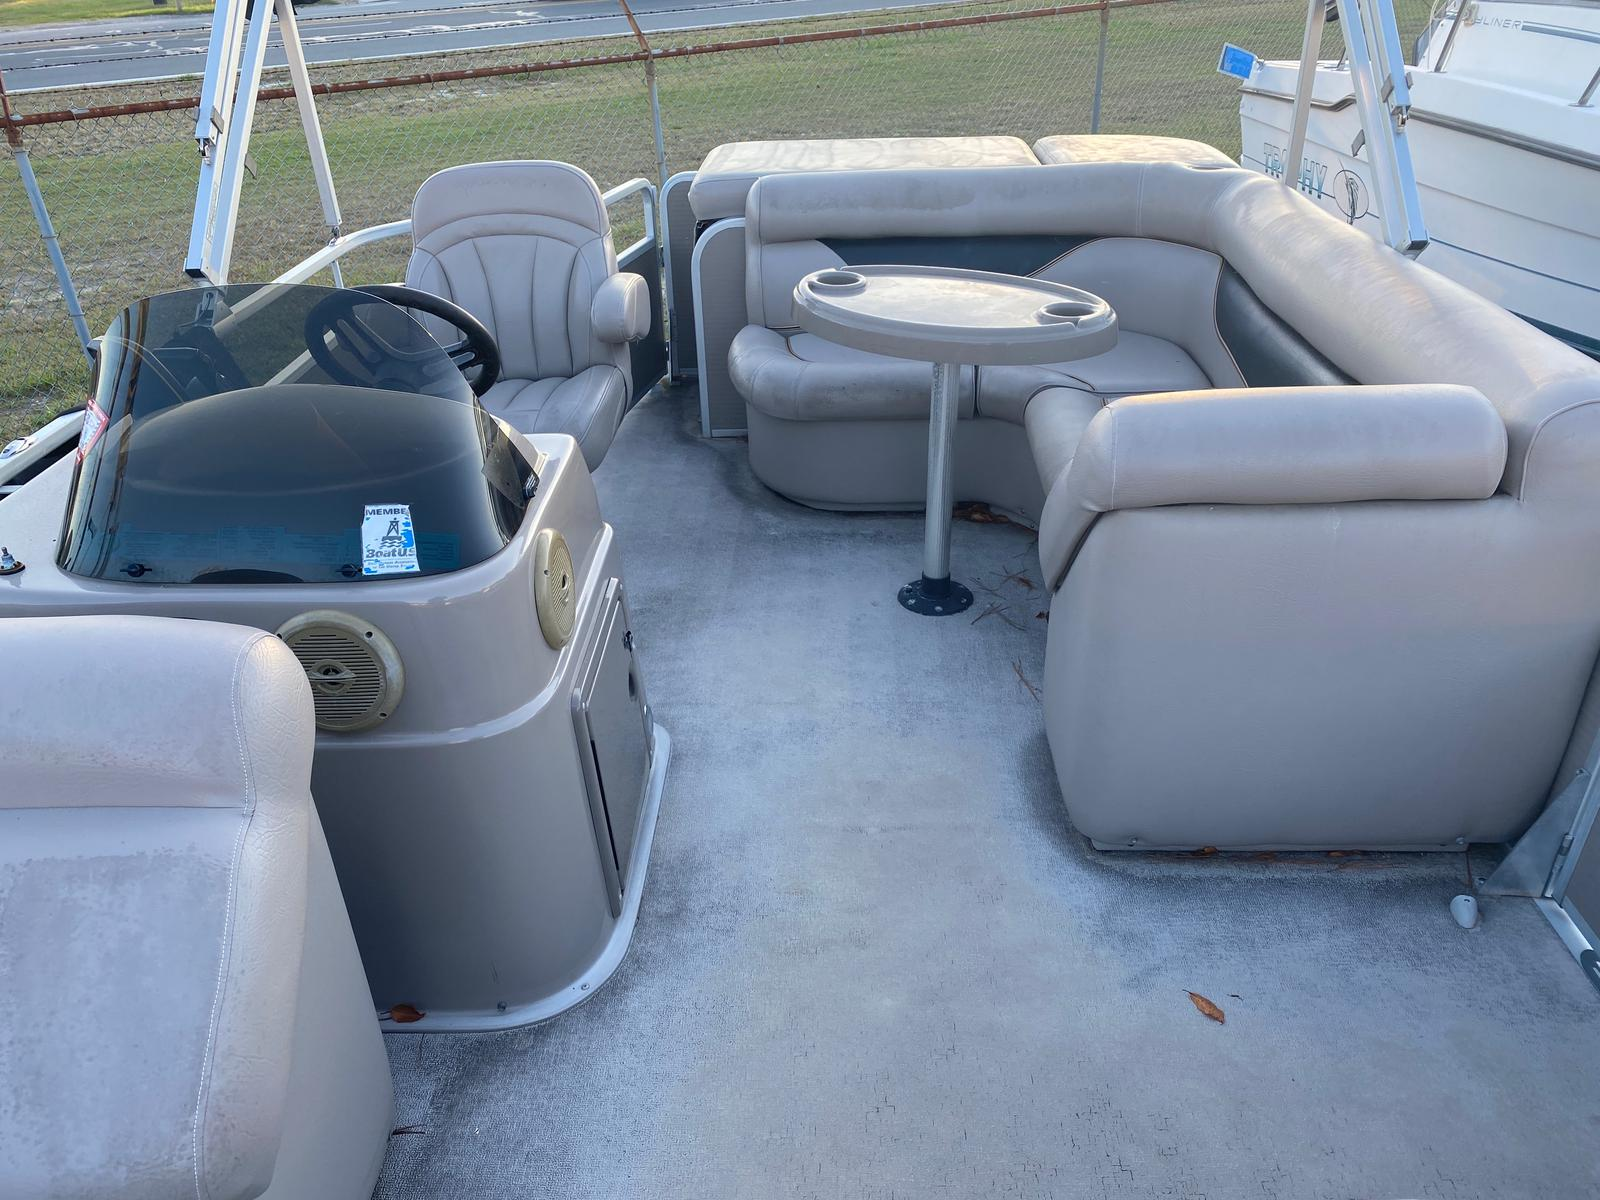 2009 Premier Pontoons boat for sale, model of the boat is Sunspree 200 Pontoon & Image # 8 of 13